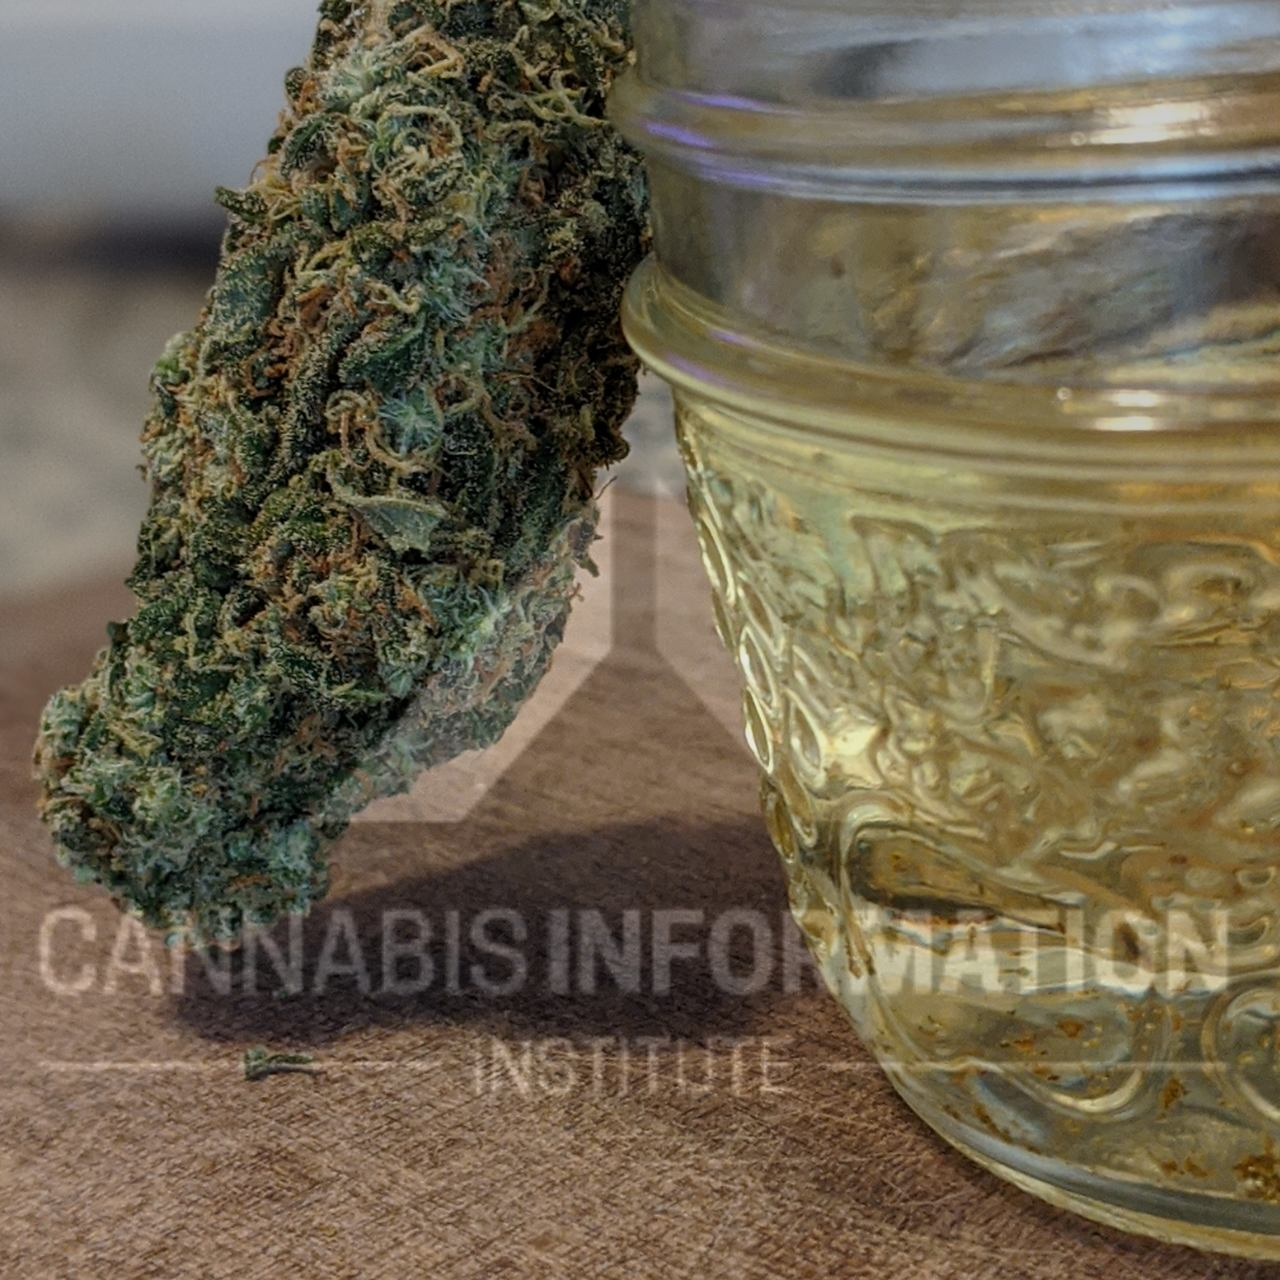 cannabis videos, instructional videos, cannabis recipe cards, cannabis edible recipes, cannabis edibles, how to make a test batch of cannabis oil, how to make potent canna coconut oil, how to make canna oil fast, what color should canna coconut oil be, flower to oil ratio, how to make cannabis oil, easy cannabis oil method, small batch cannabis oil, slow cooker cannabis oil, decarboxylation for cannabis edibles, decarbing weed for edibles, how to make weed oil small batch,